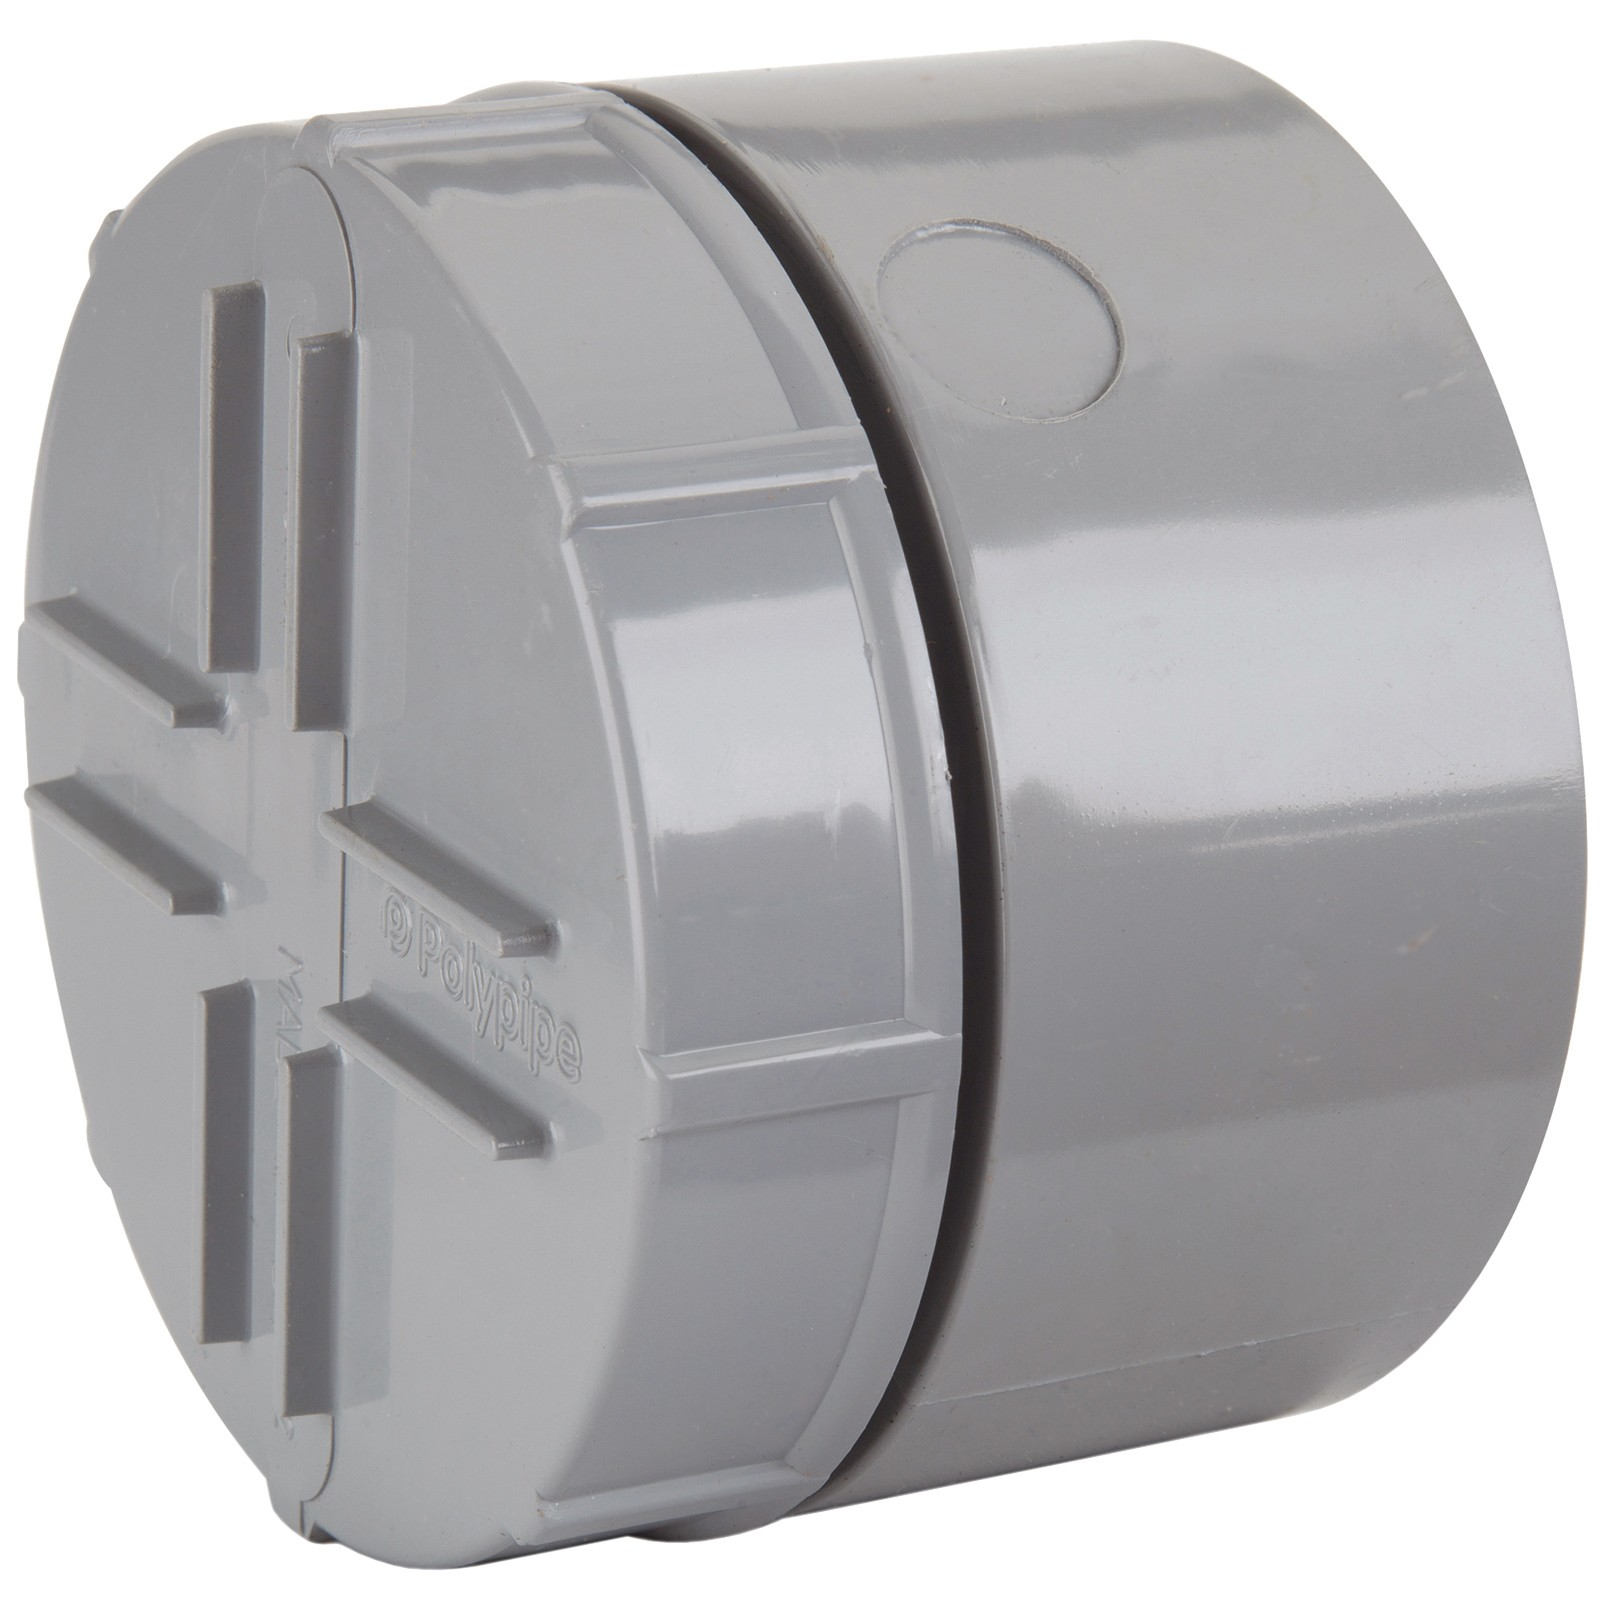 Polypipe 110mm Soil Socket Tail Screwed Access Cap - Grey